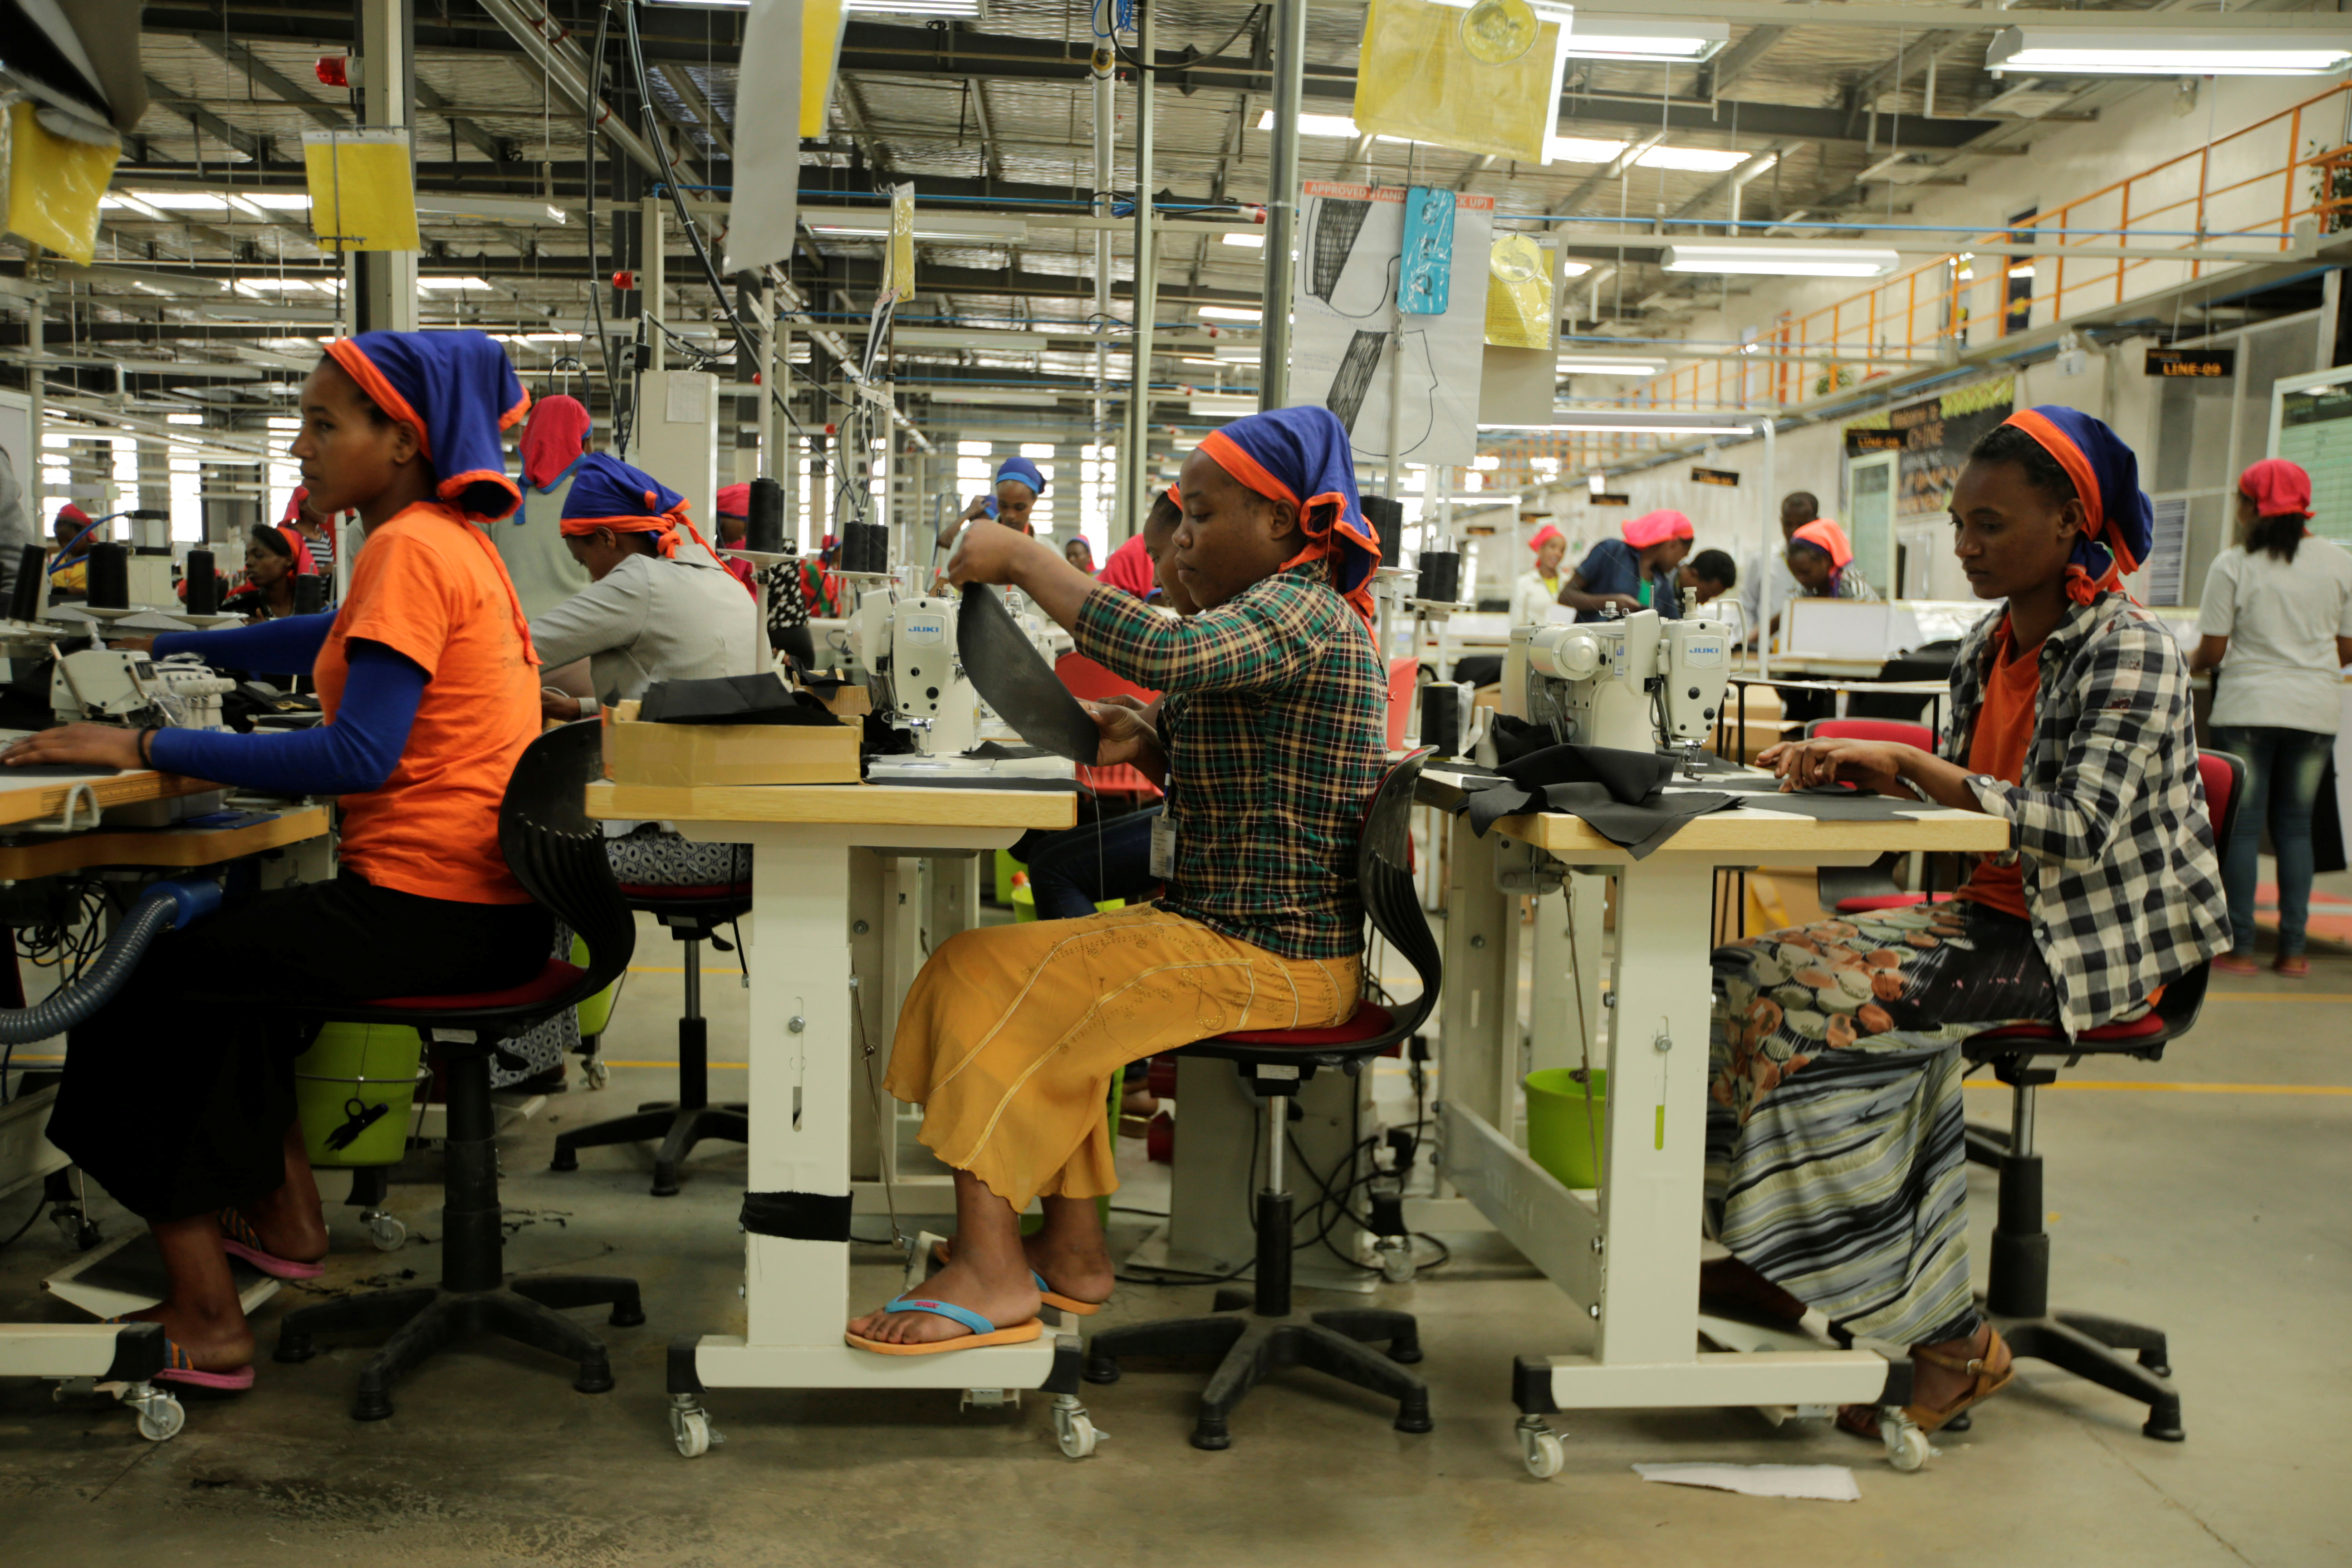 Workers sew clothes inside the Indochine Apparel PLC textile factory in Hawassa Industrial Park in Southern Nations, Nationalities and Peoples region, Ethiopia November 17, 2017. Picture taken November 17, 2017.REUTERS/Tiksa Negeri - RC1A972030A0